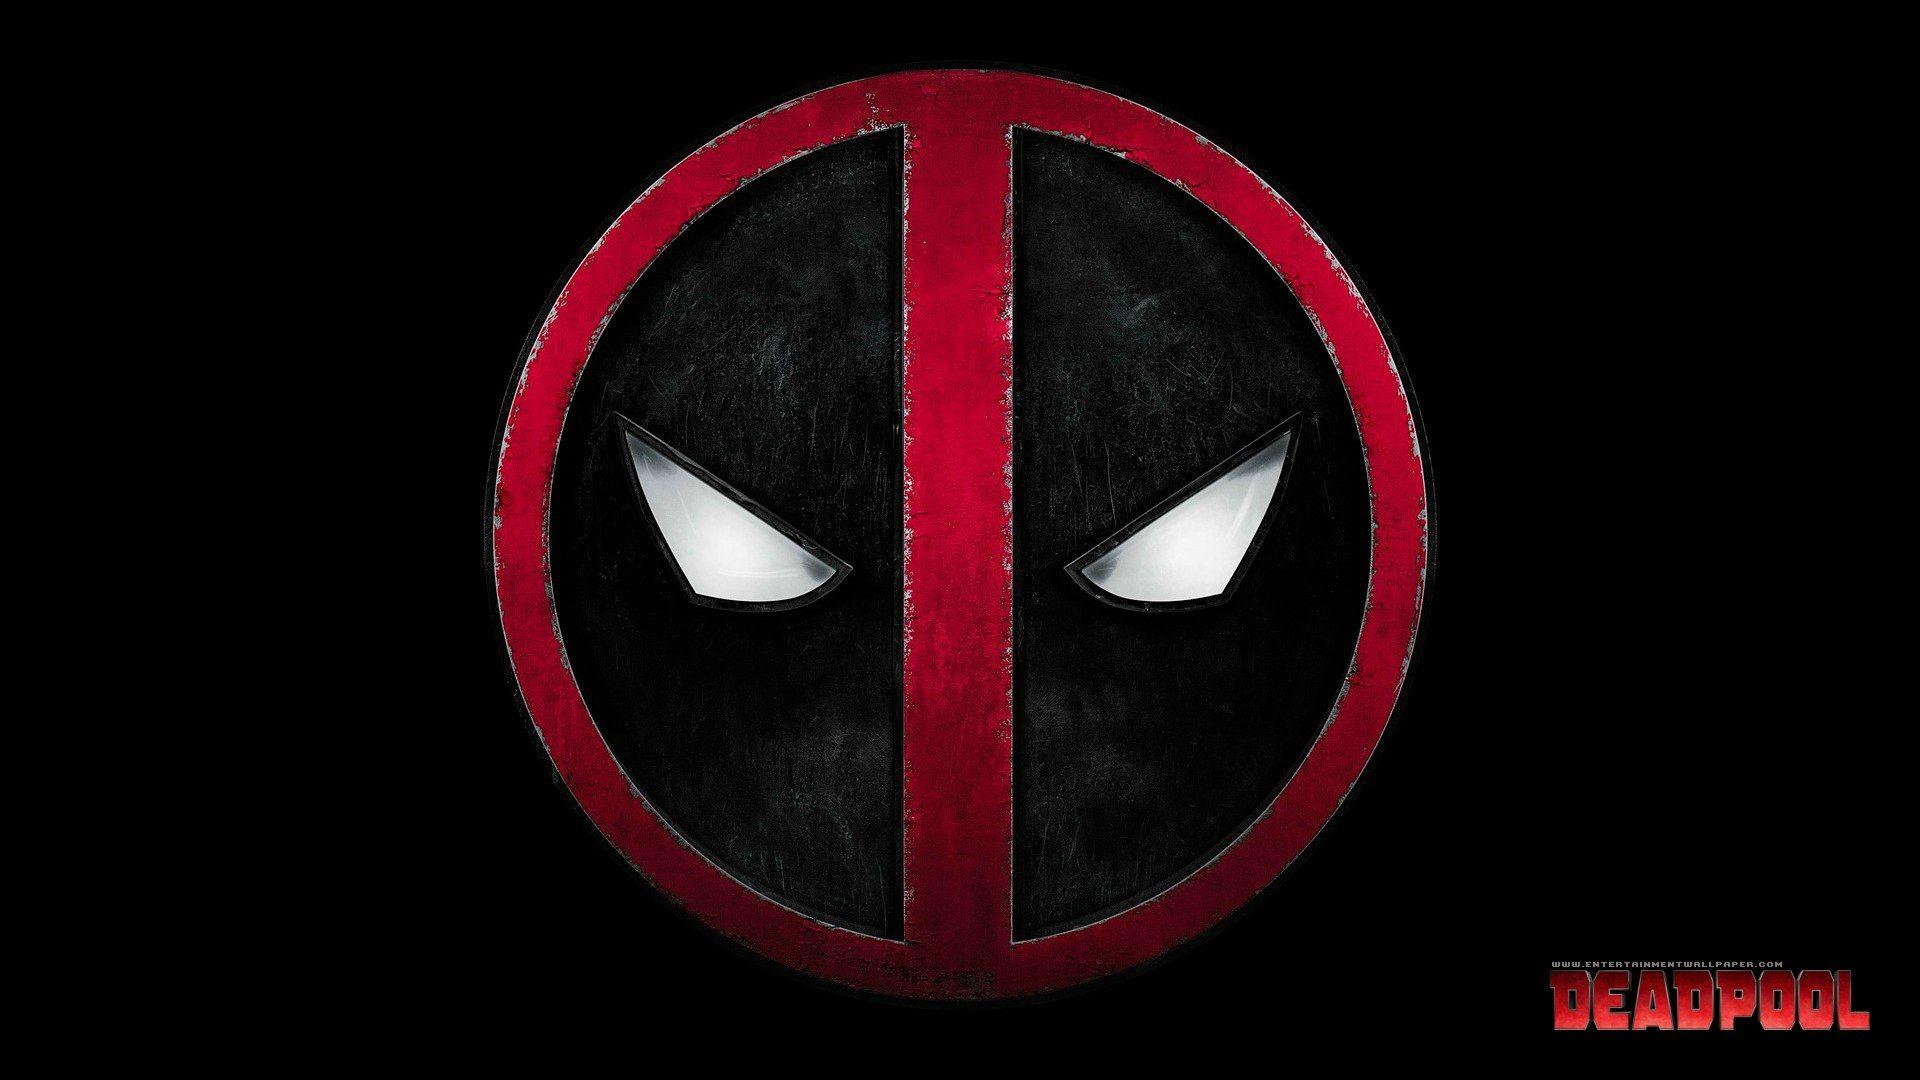 Deadpool Wallpapers, Pictures, Image